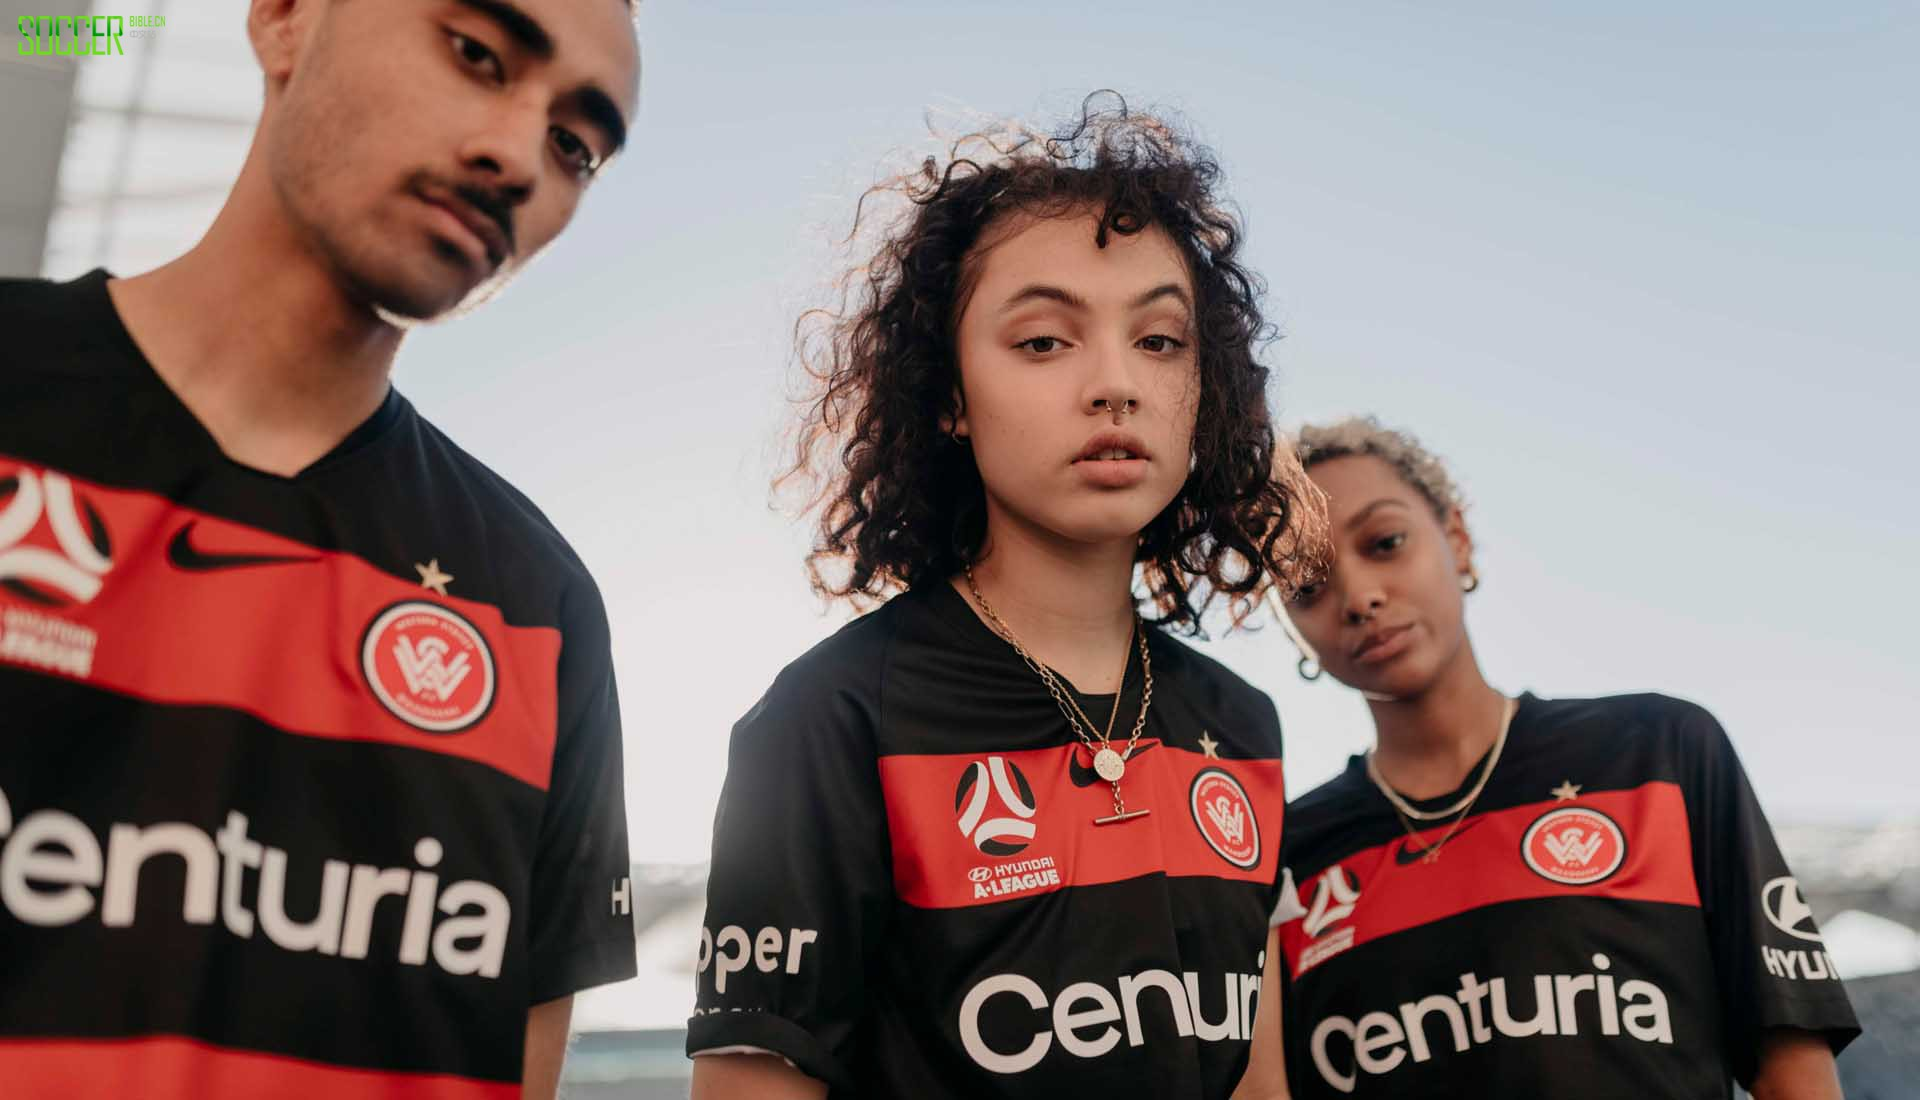 1-wsw